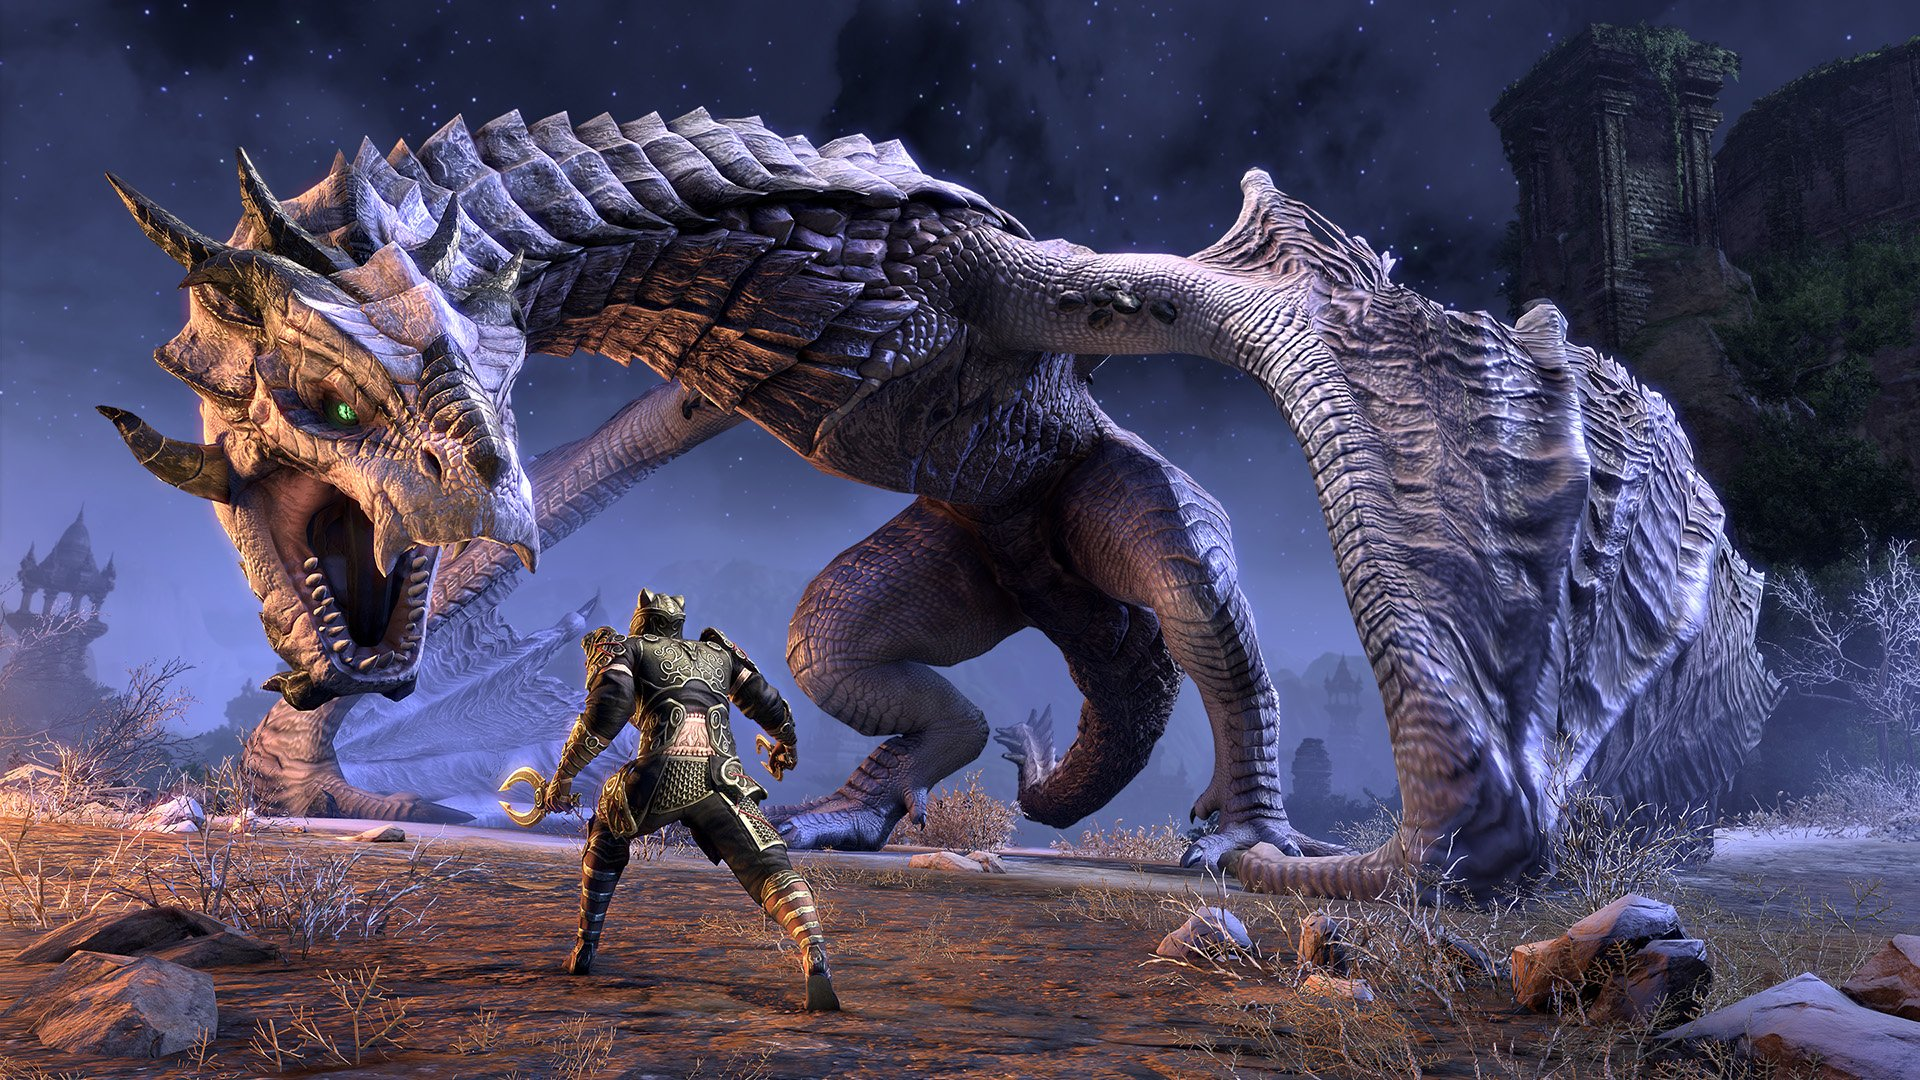 ESO Dragonhold and Scalebreaker DLC announced